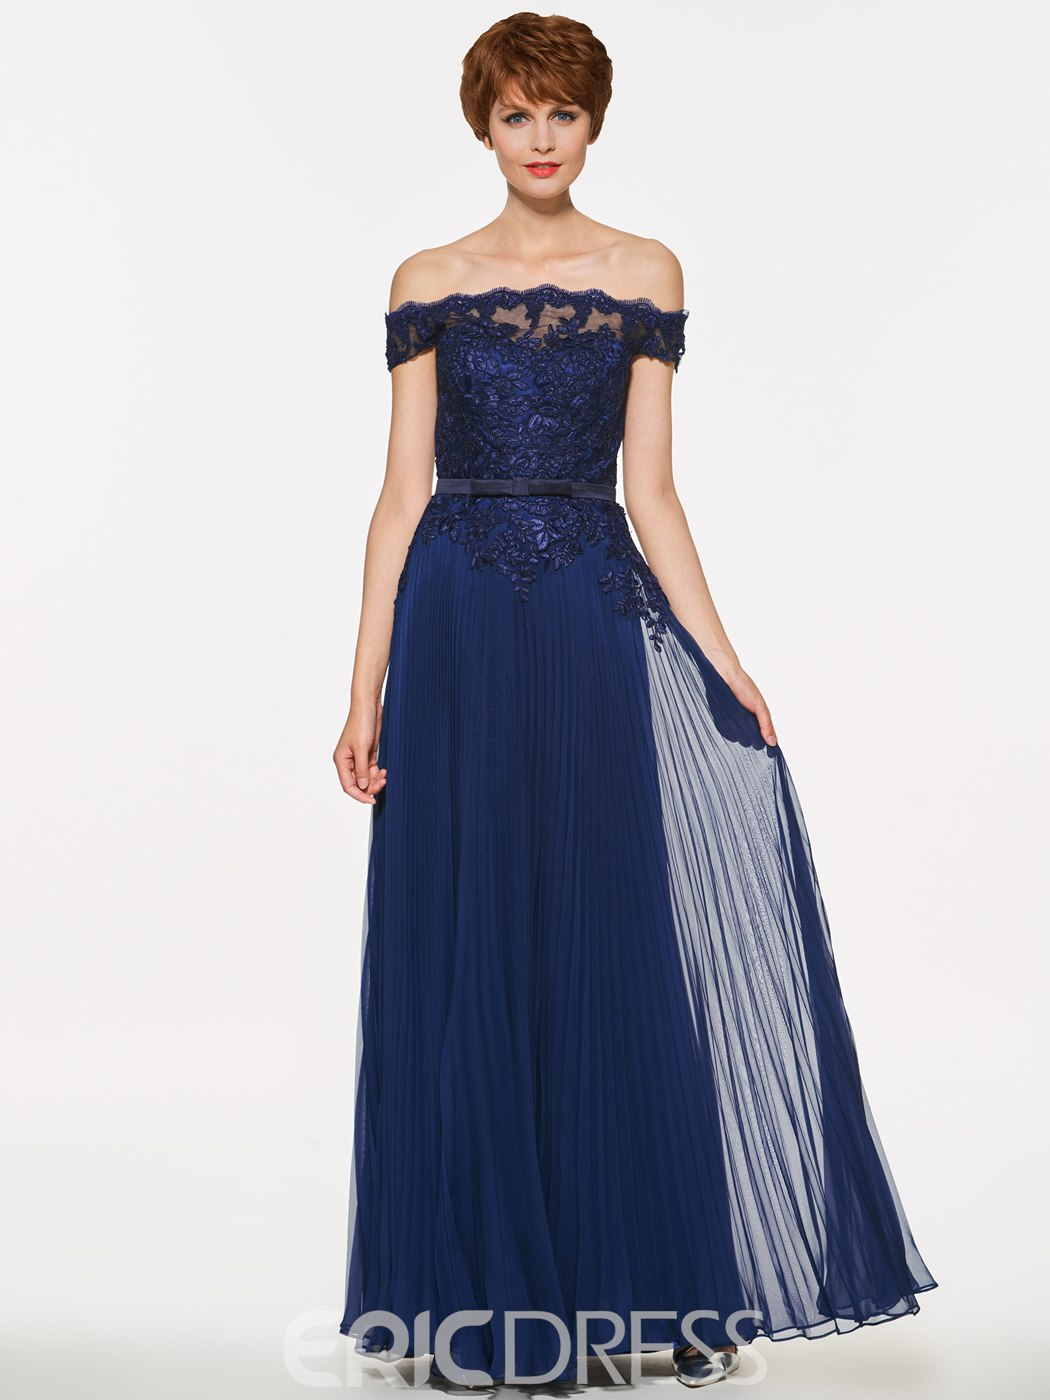 Ericdress Off The Shoulder Appliques A Line Mother Of The Bride Dress